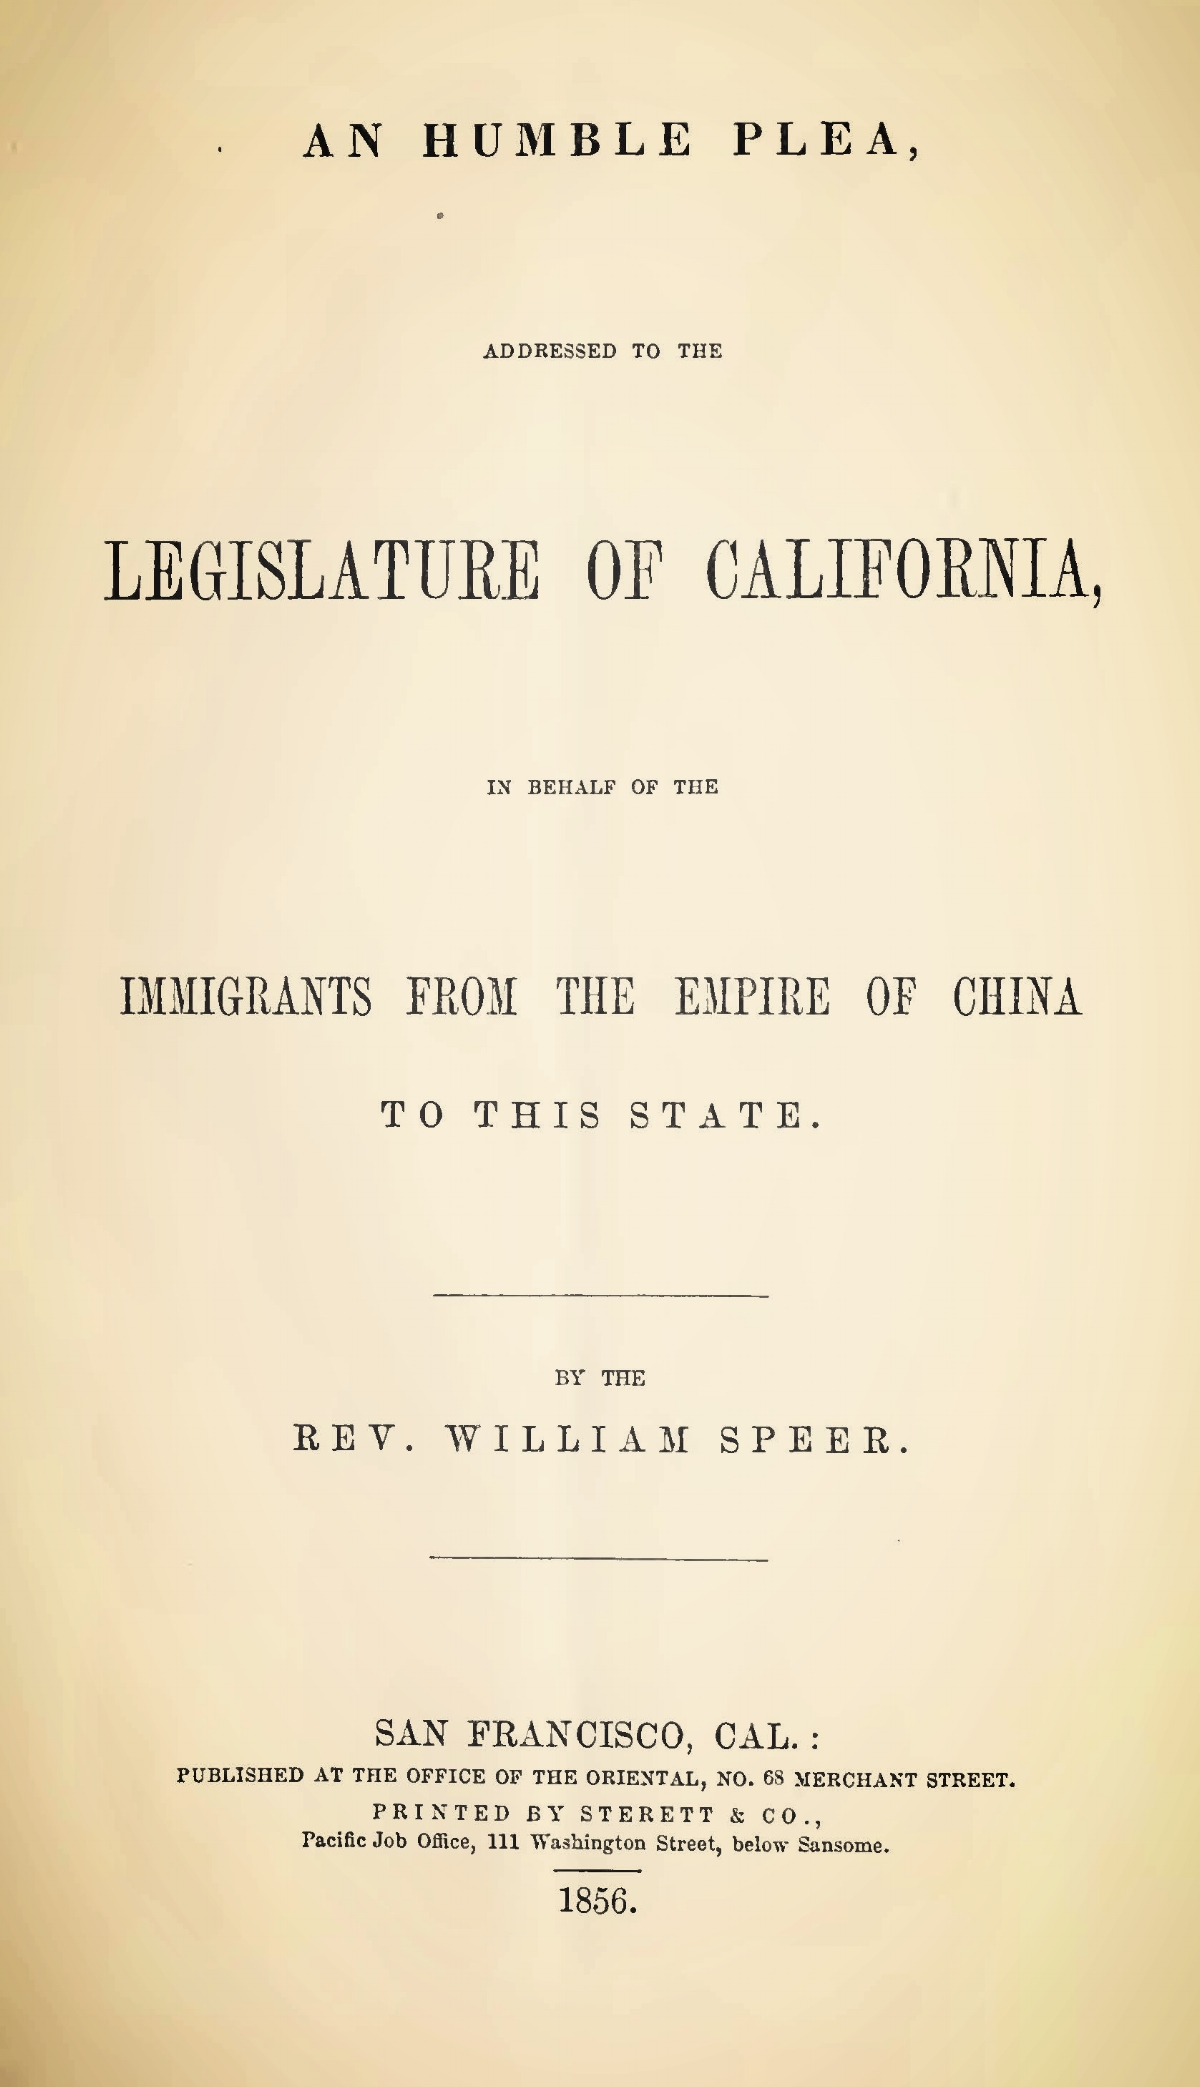 Speer, William, Humble Plea in Behalf of the Immigrants from the Empire of China to this State Title Page.jpg